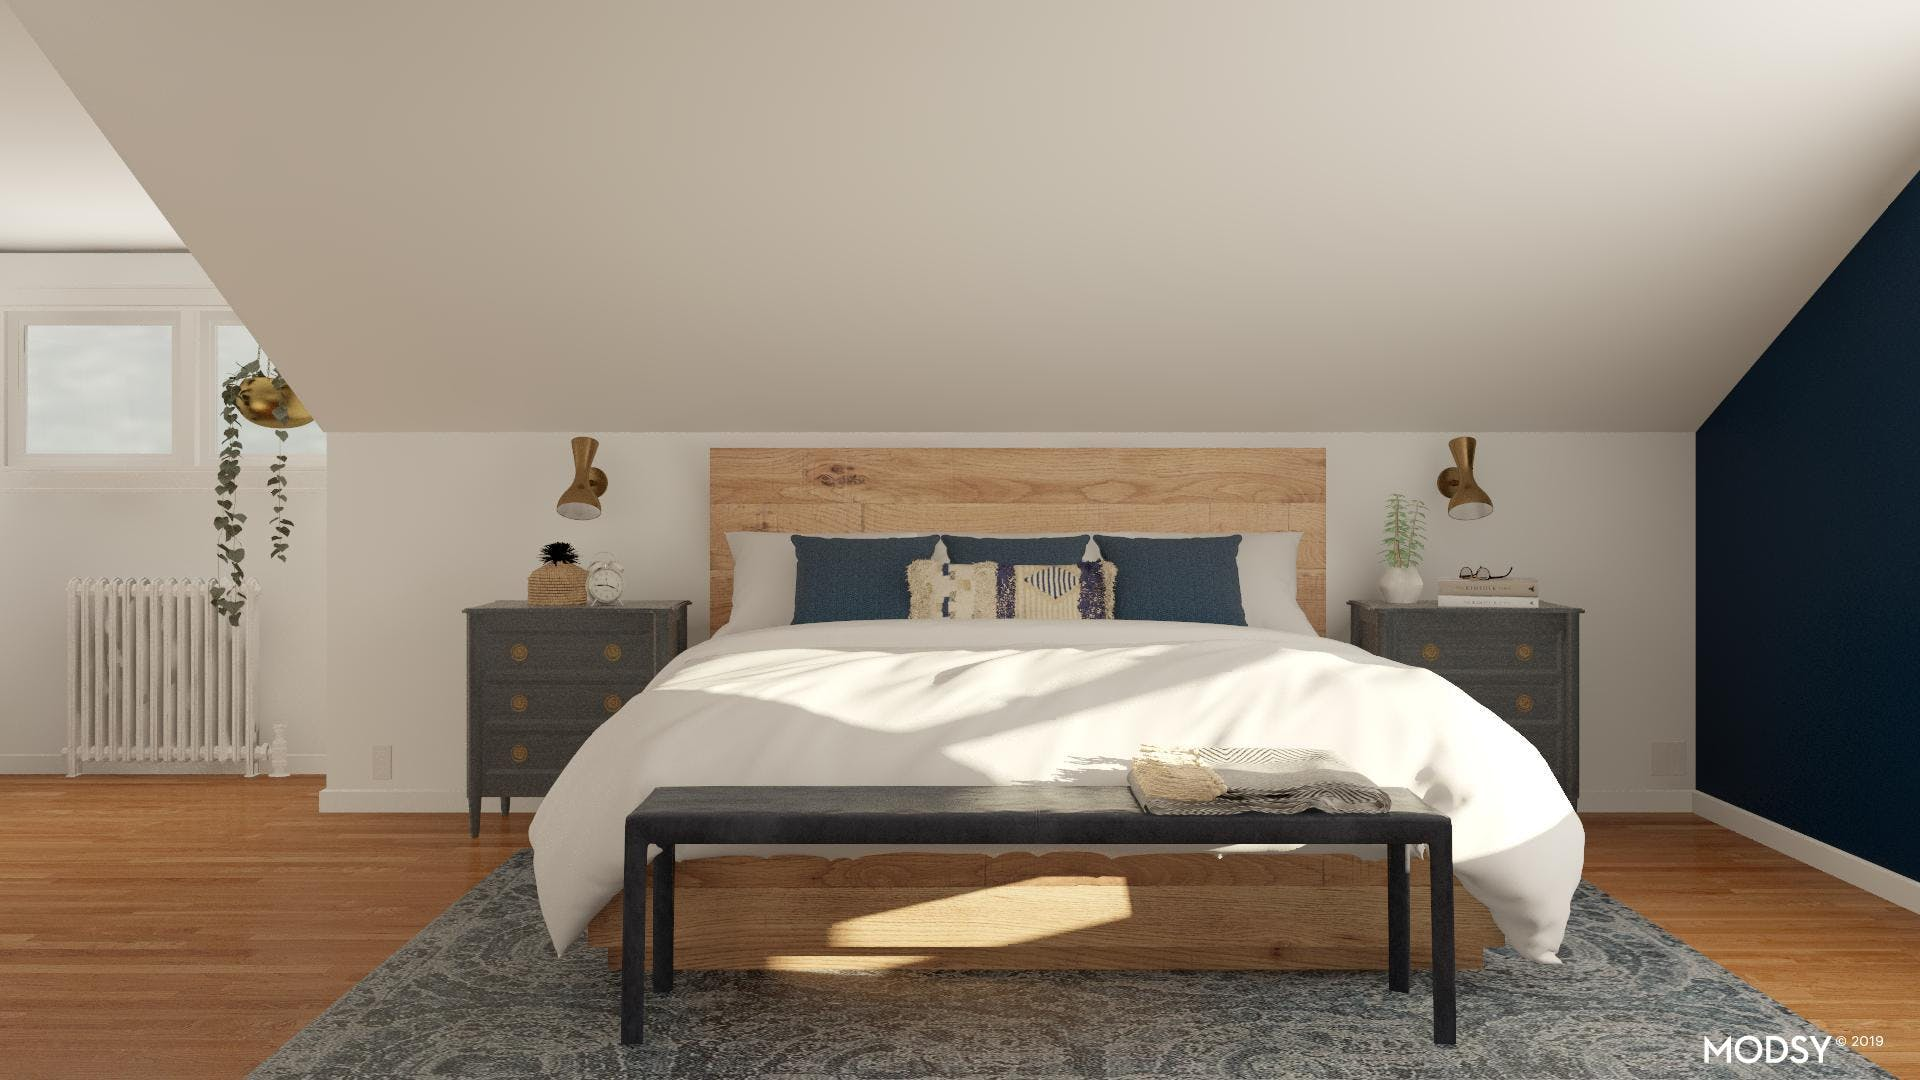 Grand Style, Small Space